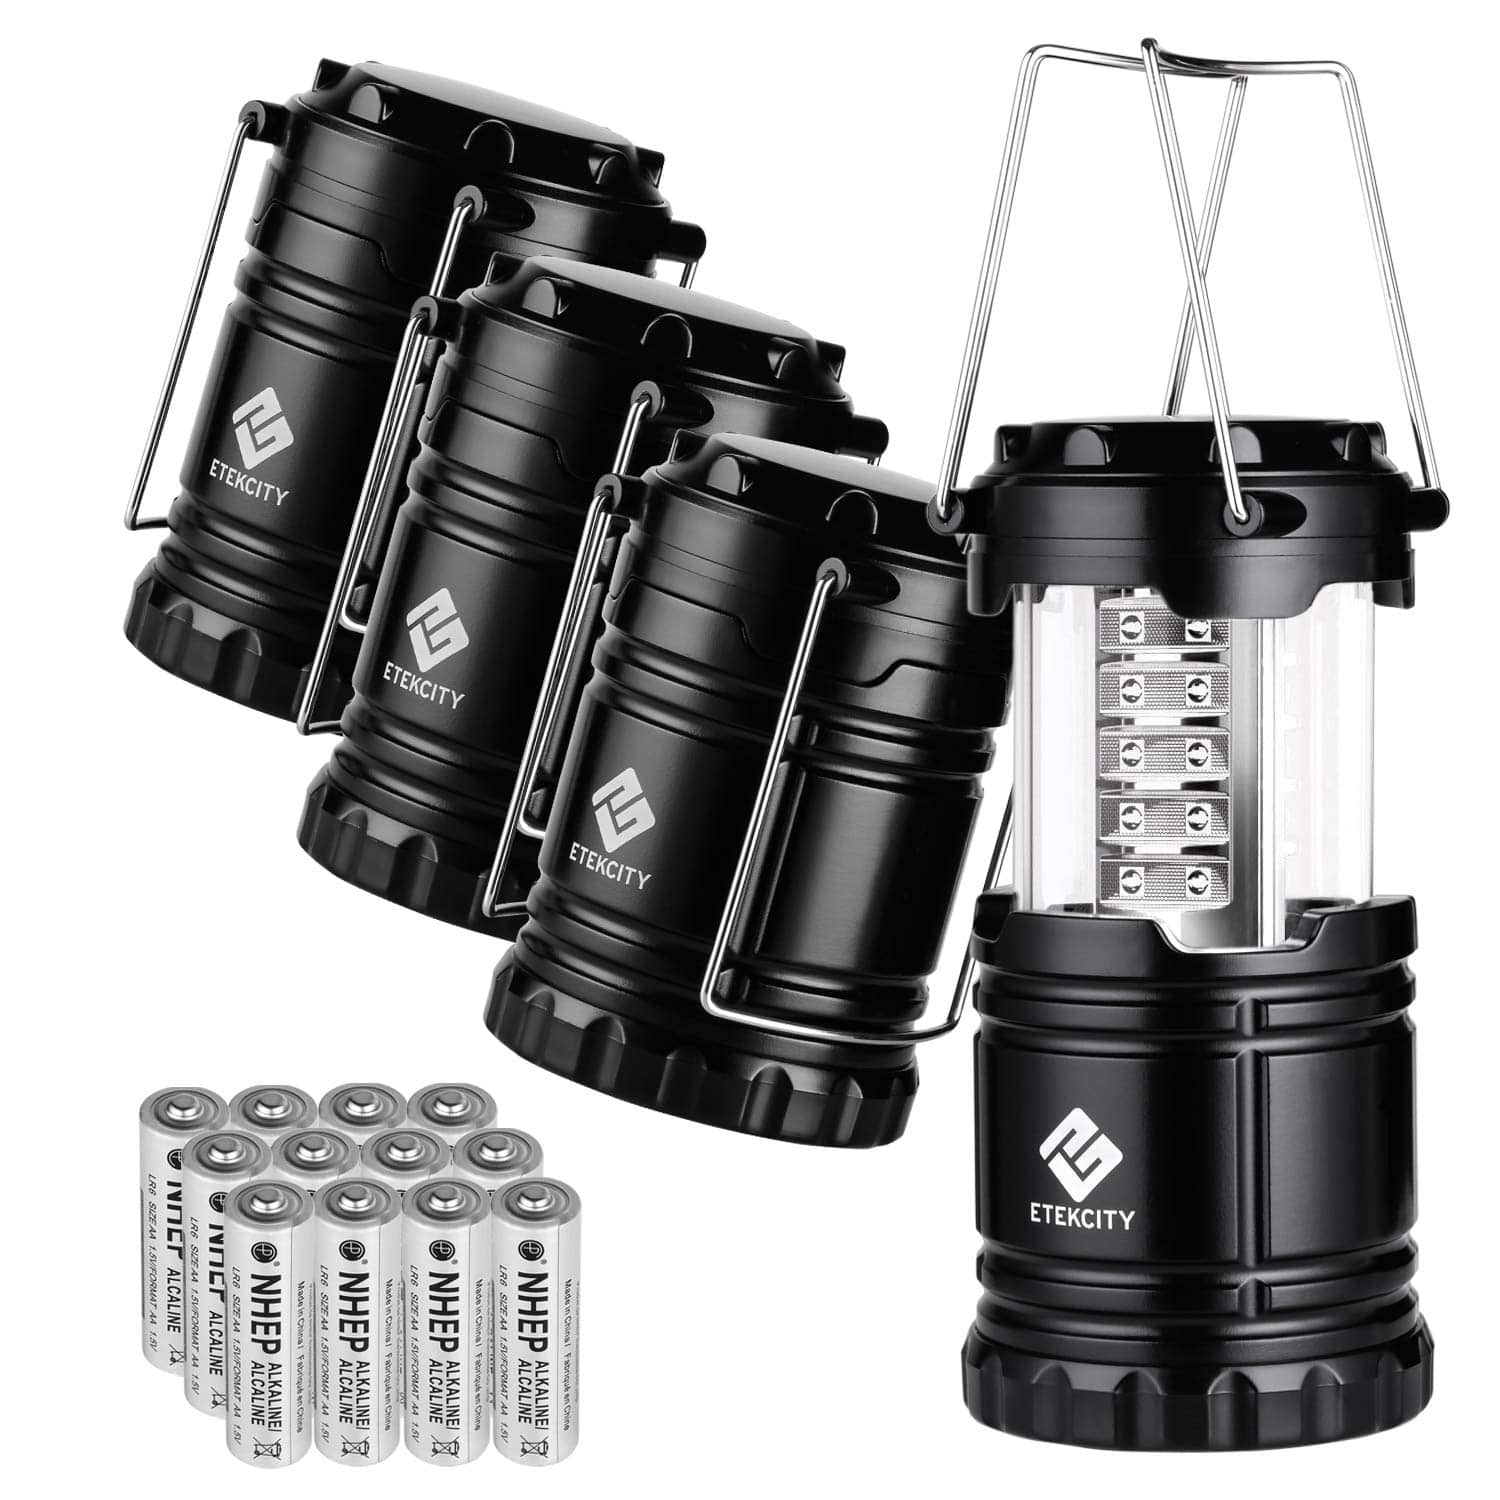 Etekcity 4 Pack LED Camping Lantern Portable Flashlight with 12 AA Batteries $19.99